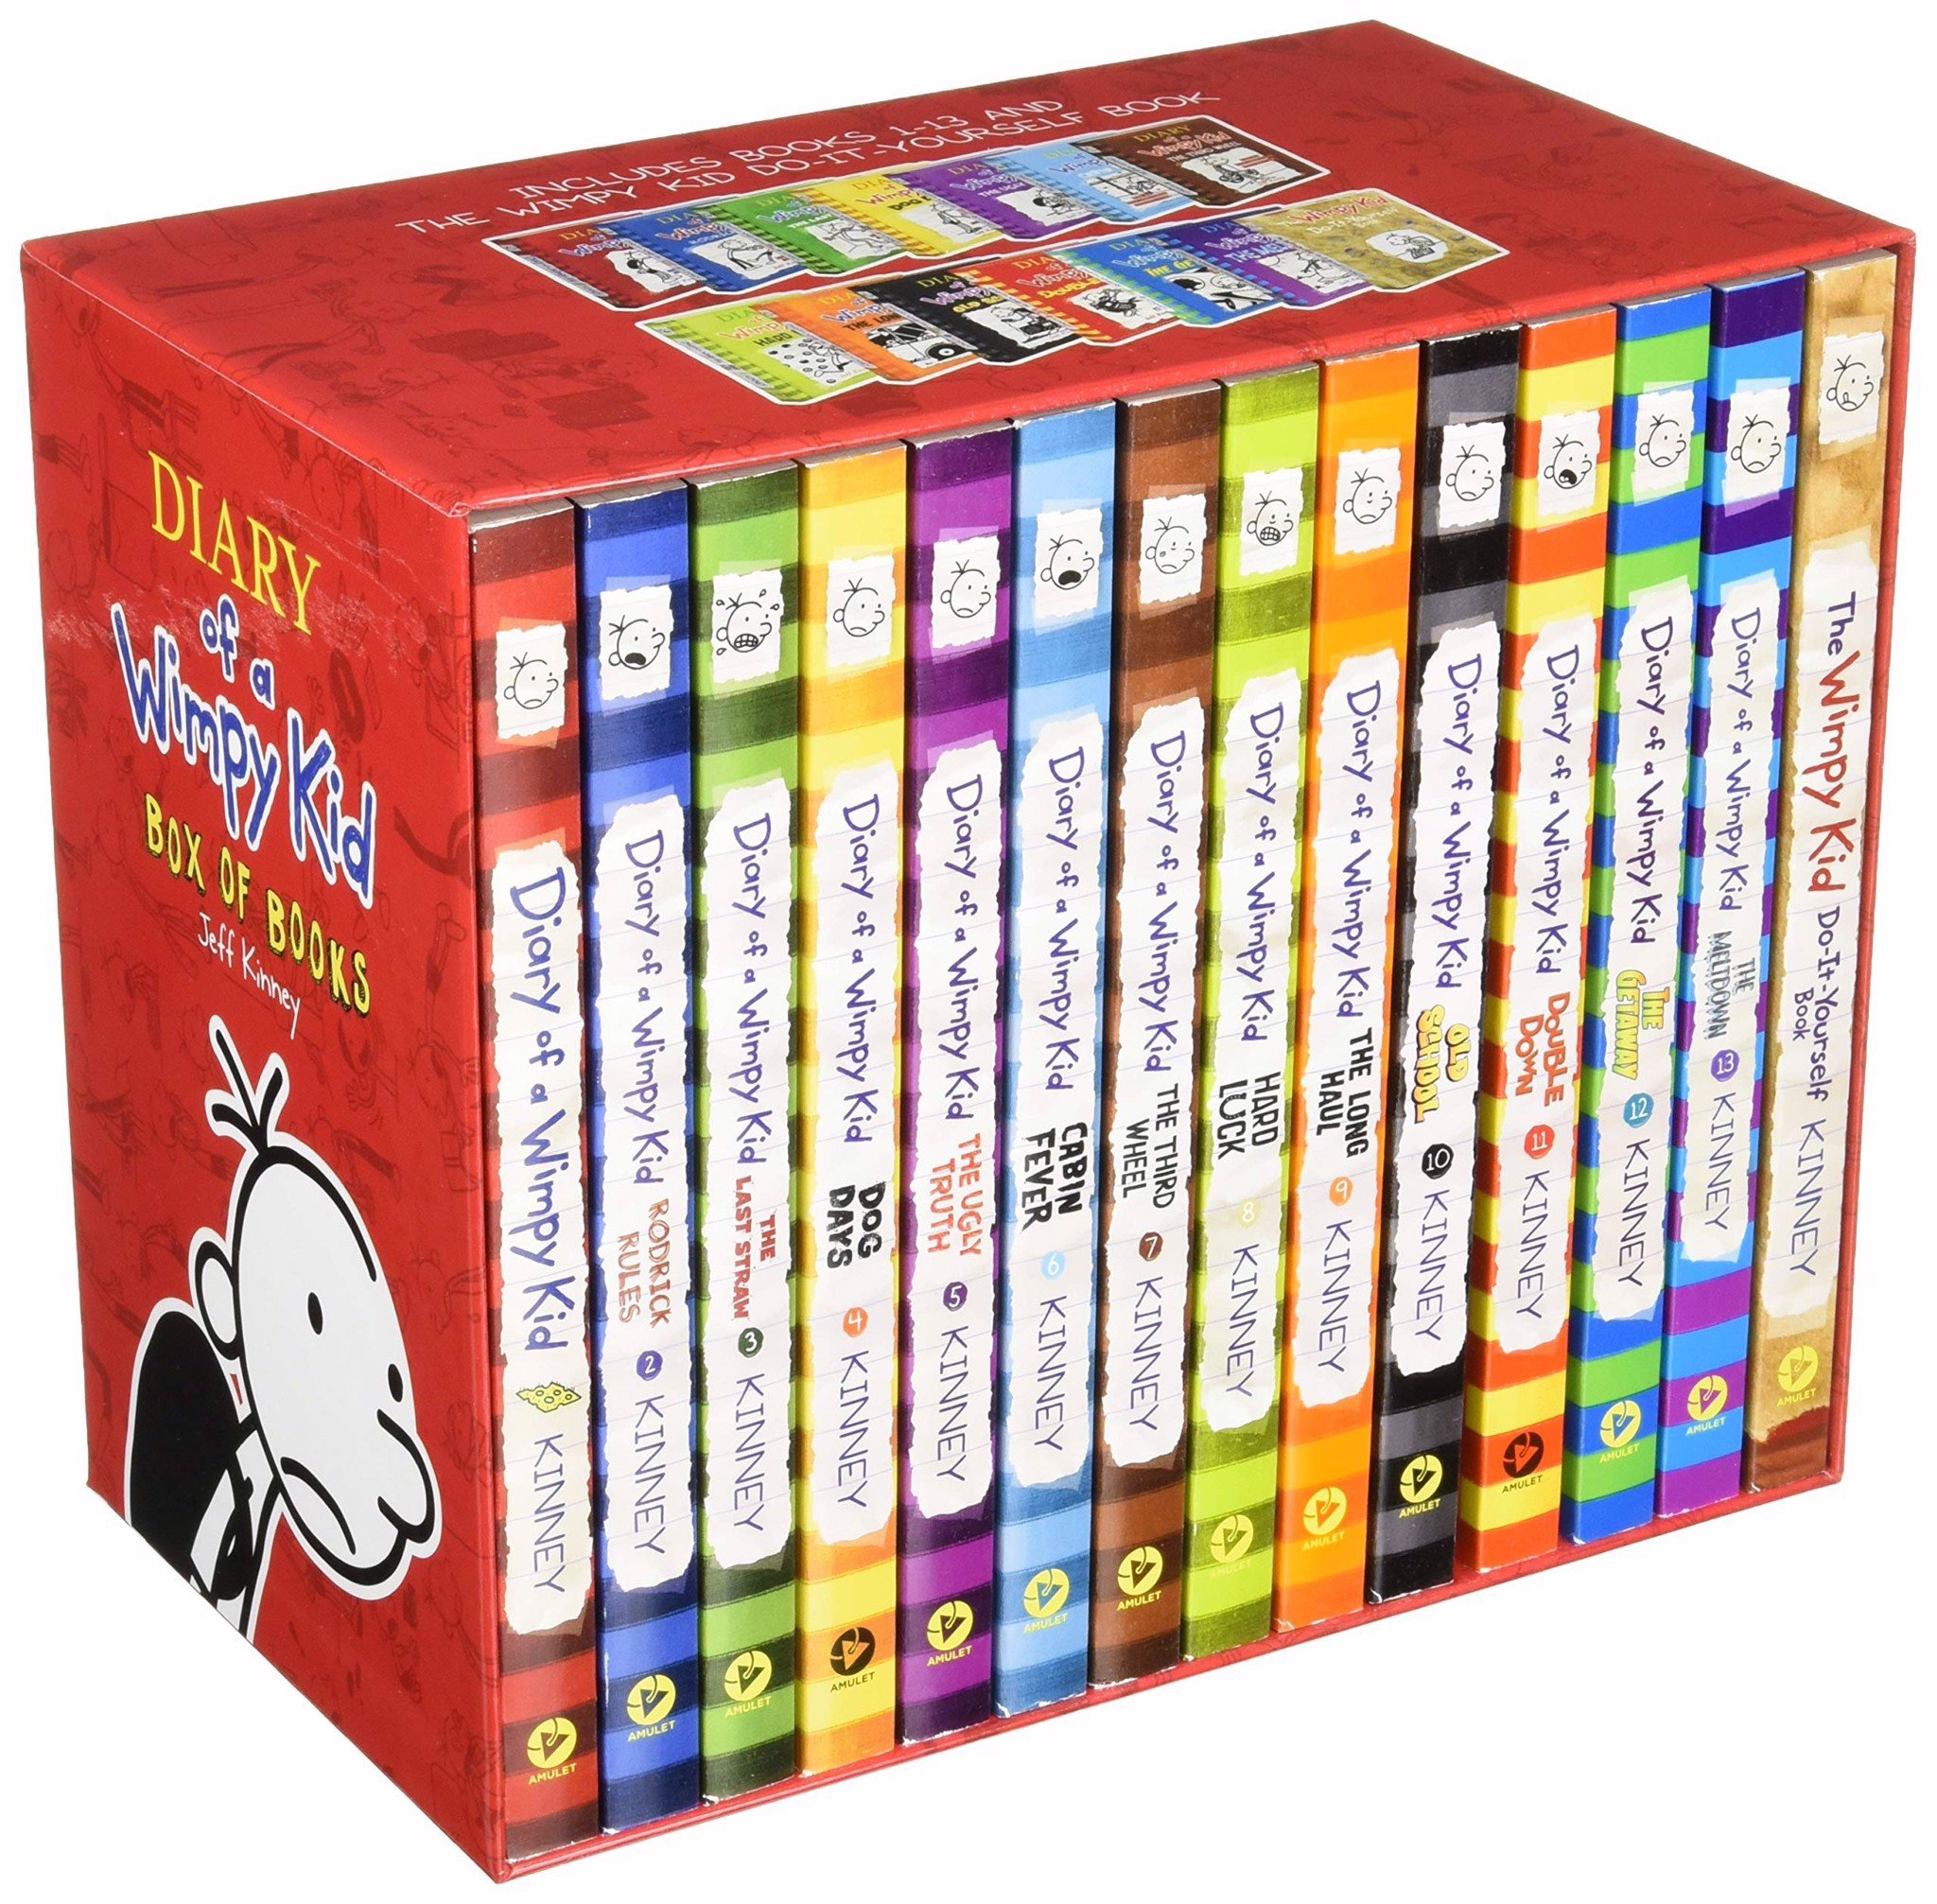 Diary of a Wimpy Kid Box of Books (1–13 + DIY) (Export)